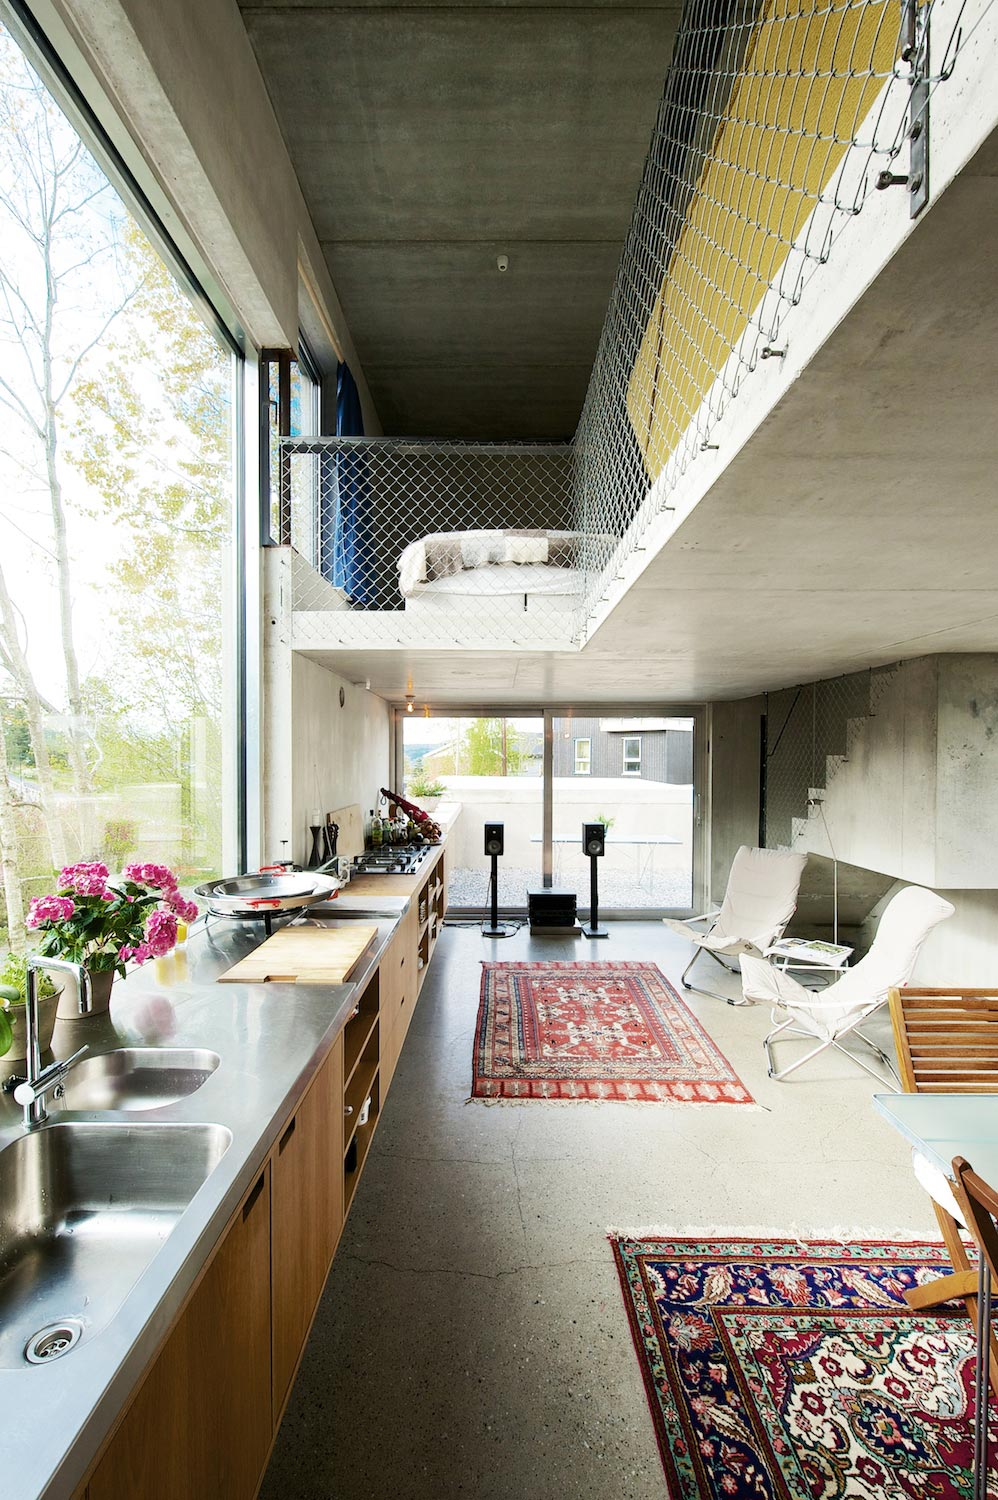 Lie Øyen Arkitekter design the Tussefaret Villa, a little home made by puzzle prefabricated concrete elements